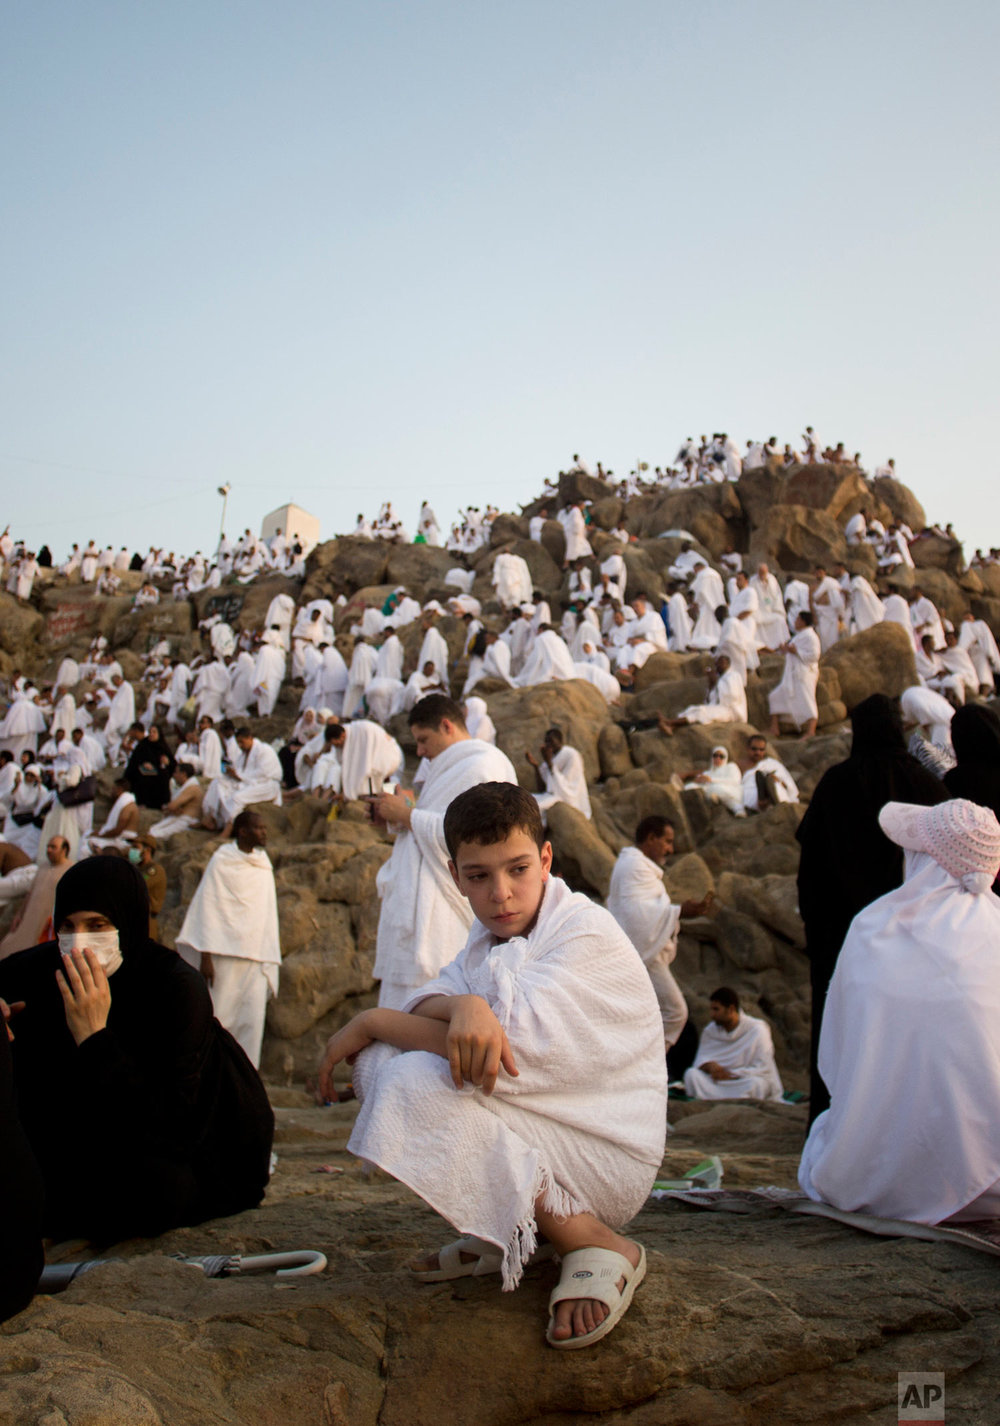 Muslim pilgrims gather to pray on and around the Jabal Al Rahma holy mountain, or the mountain of forgiveness, at Arafat for the annual hajj pilgrimage outside the holy city of Mecca, Saudi Arabia, Thursday, Aug. 31, 2017. (AP Photo/Khalil Hamra)